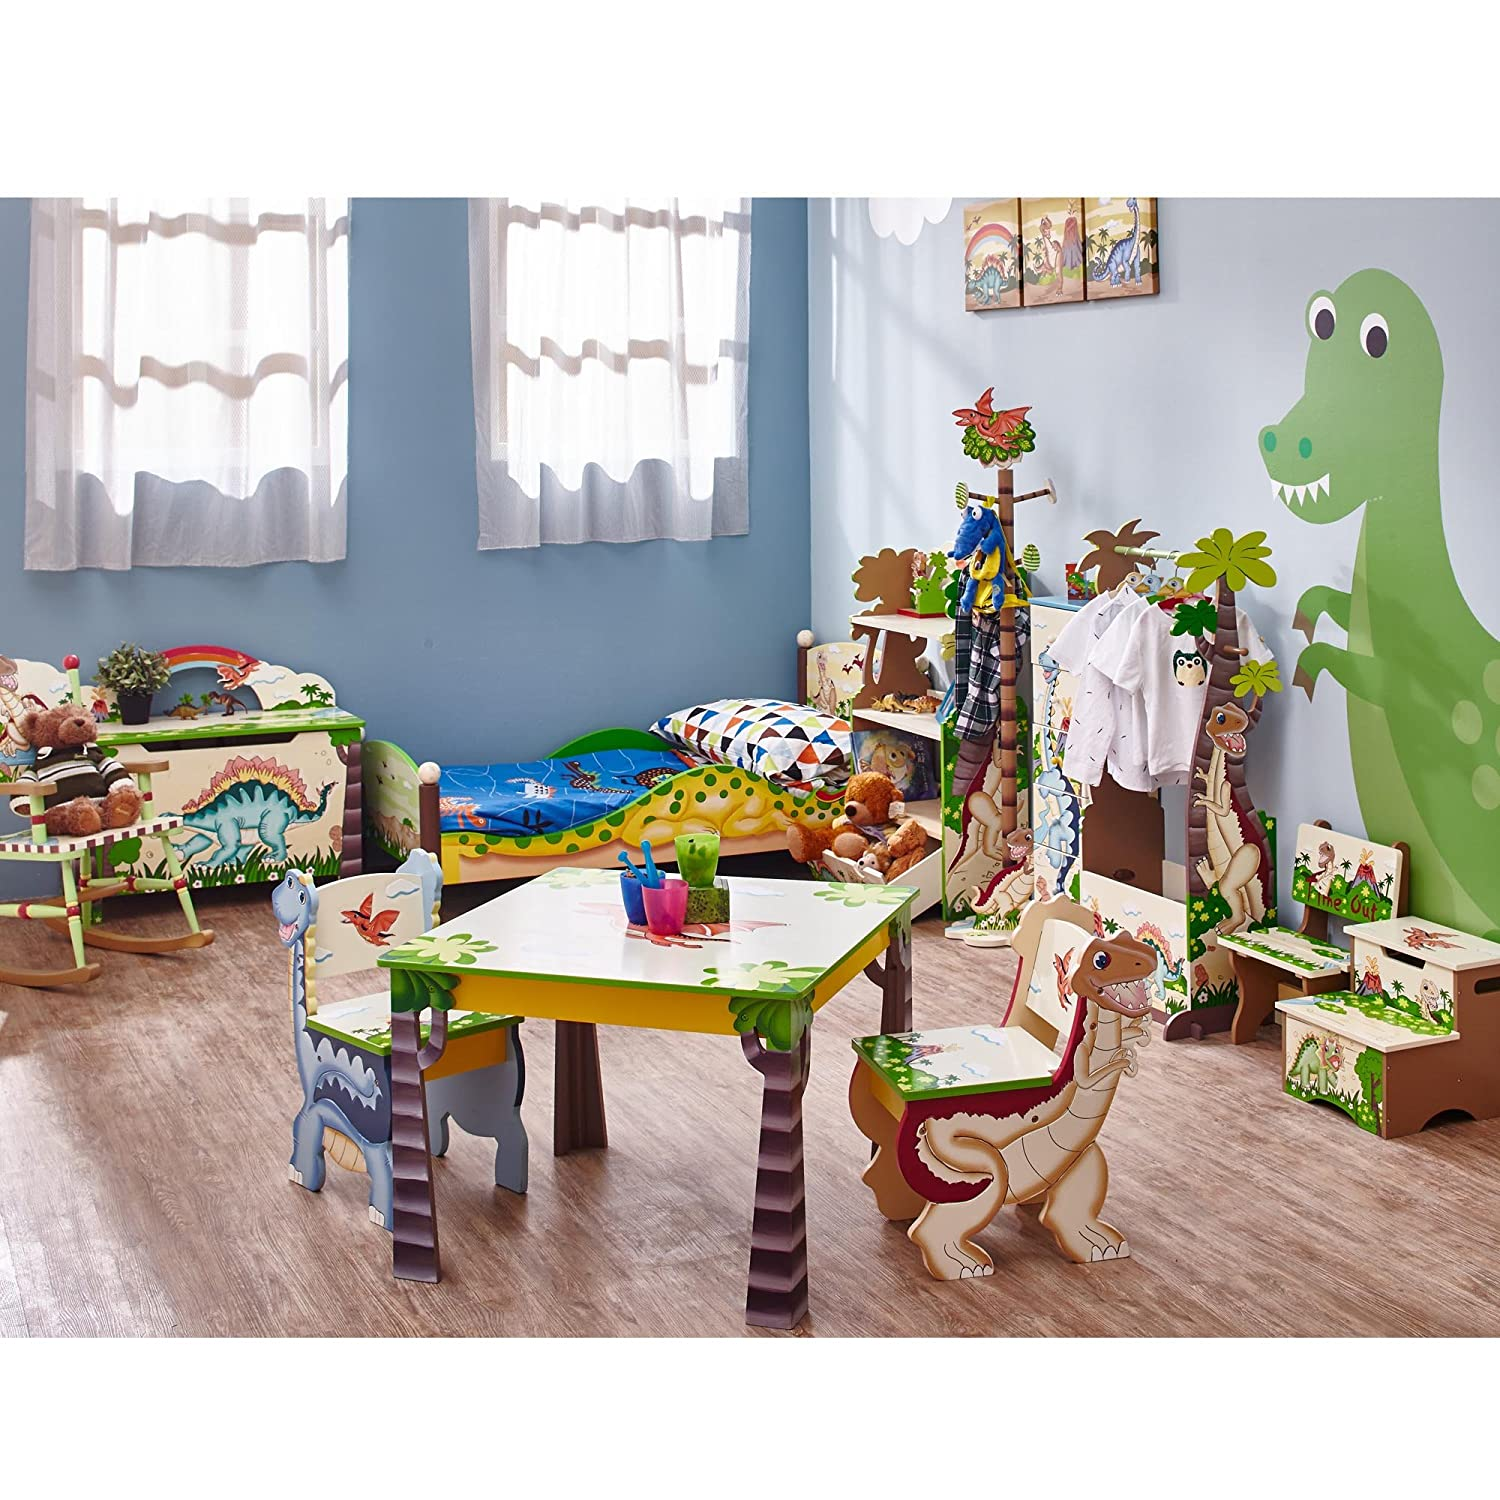 Fantasy Fields by Teamson Dinosaur Kingdom Childrens Wooden Kids